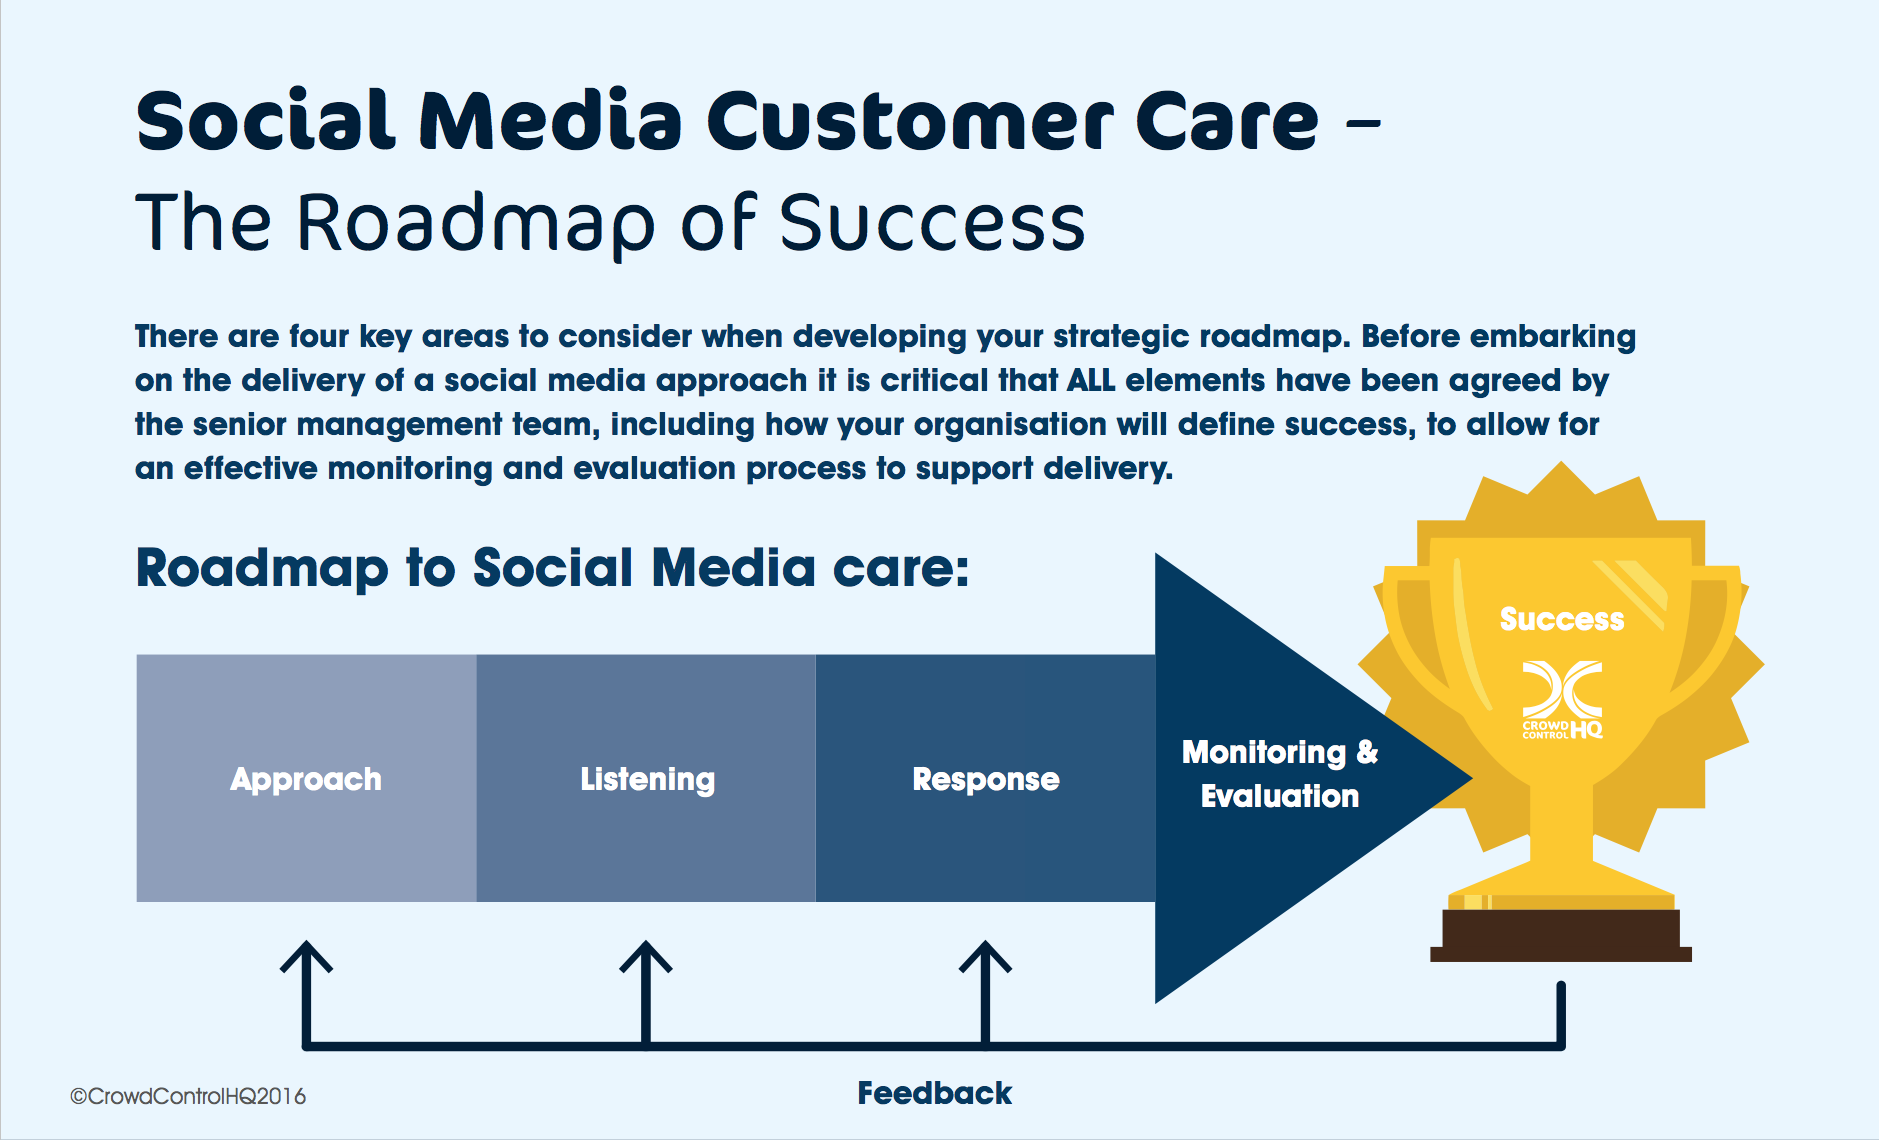 Social Media Customer Care, Roadmap of Success